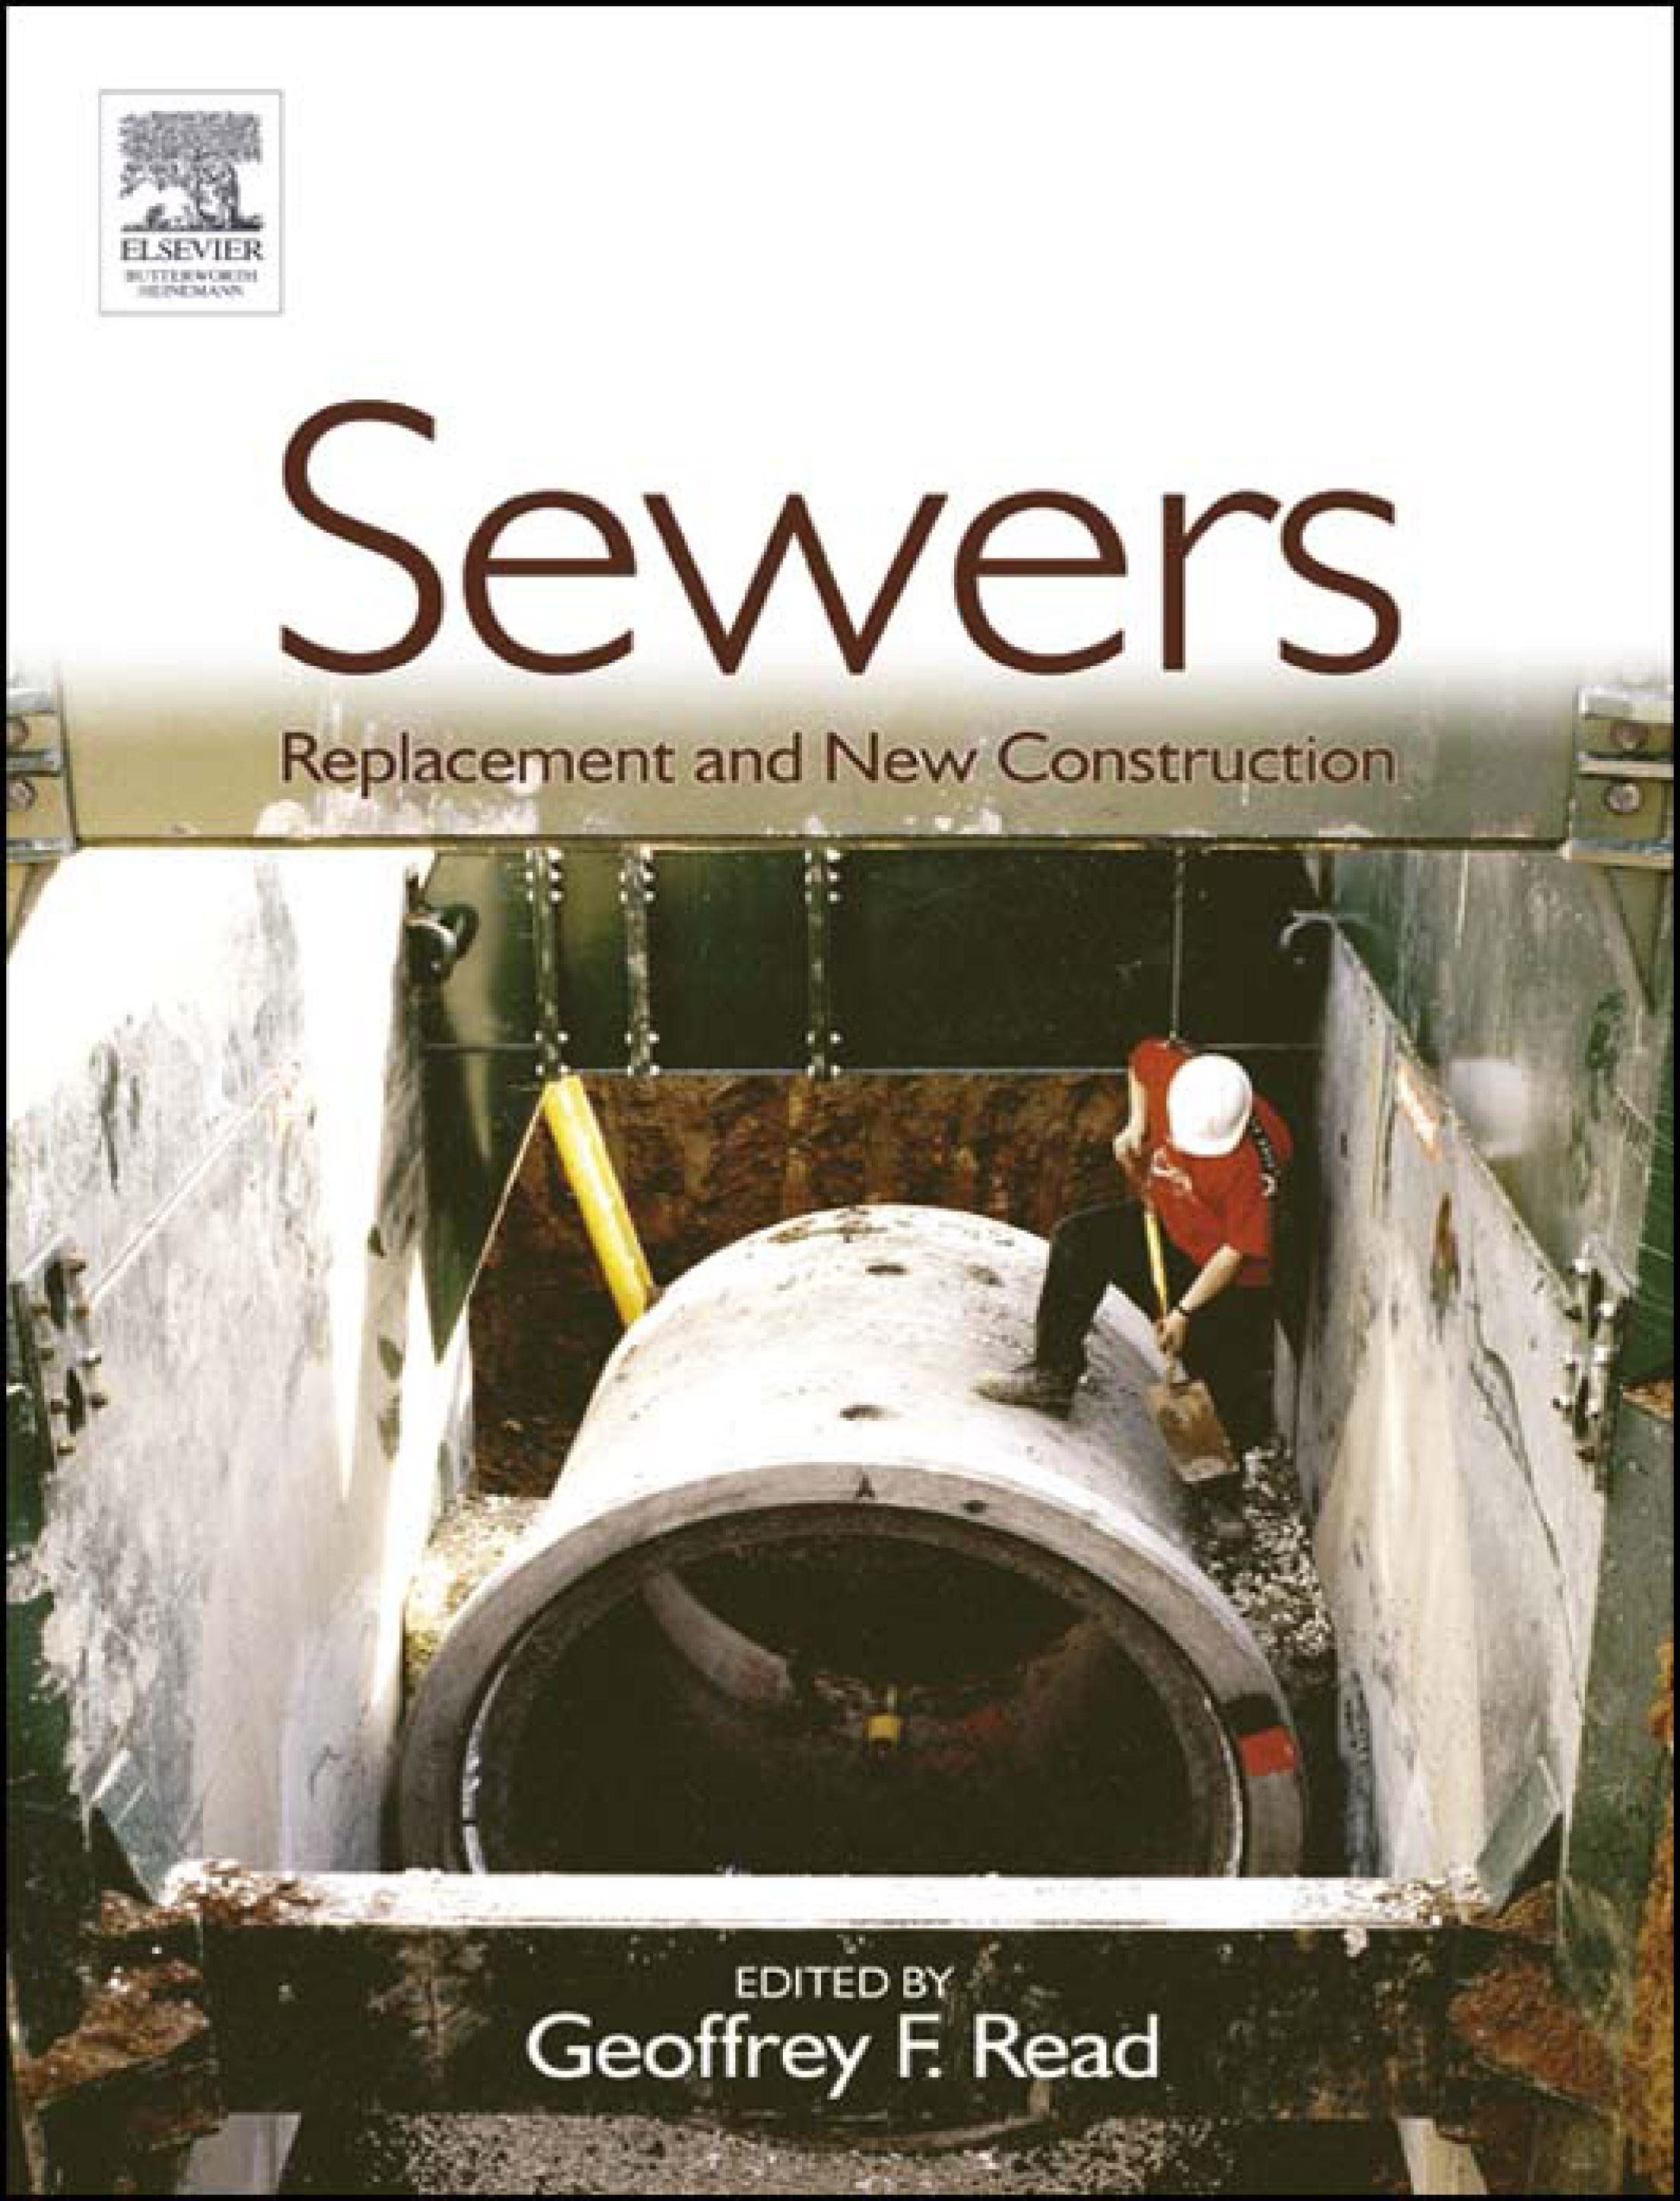 Sewers: Replacement and New Construction: Replacement and New Construction